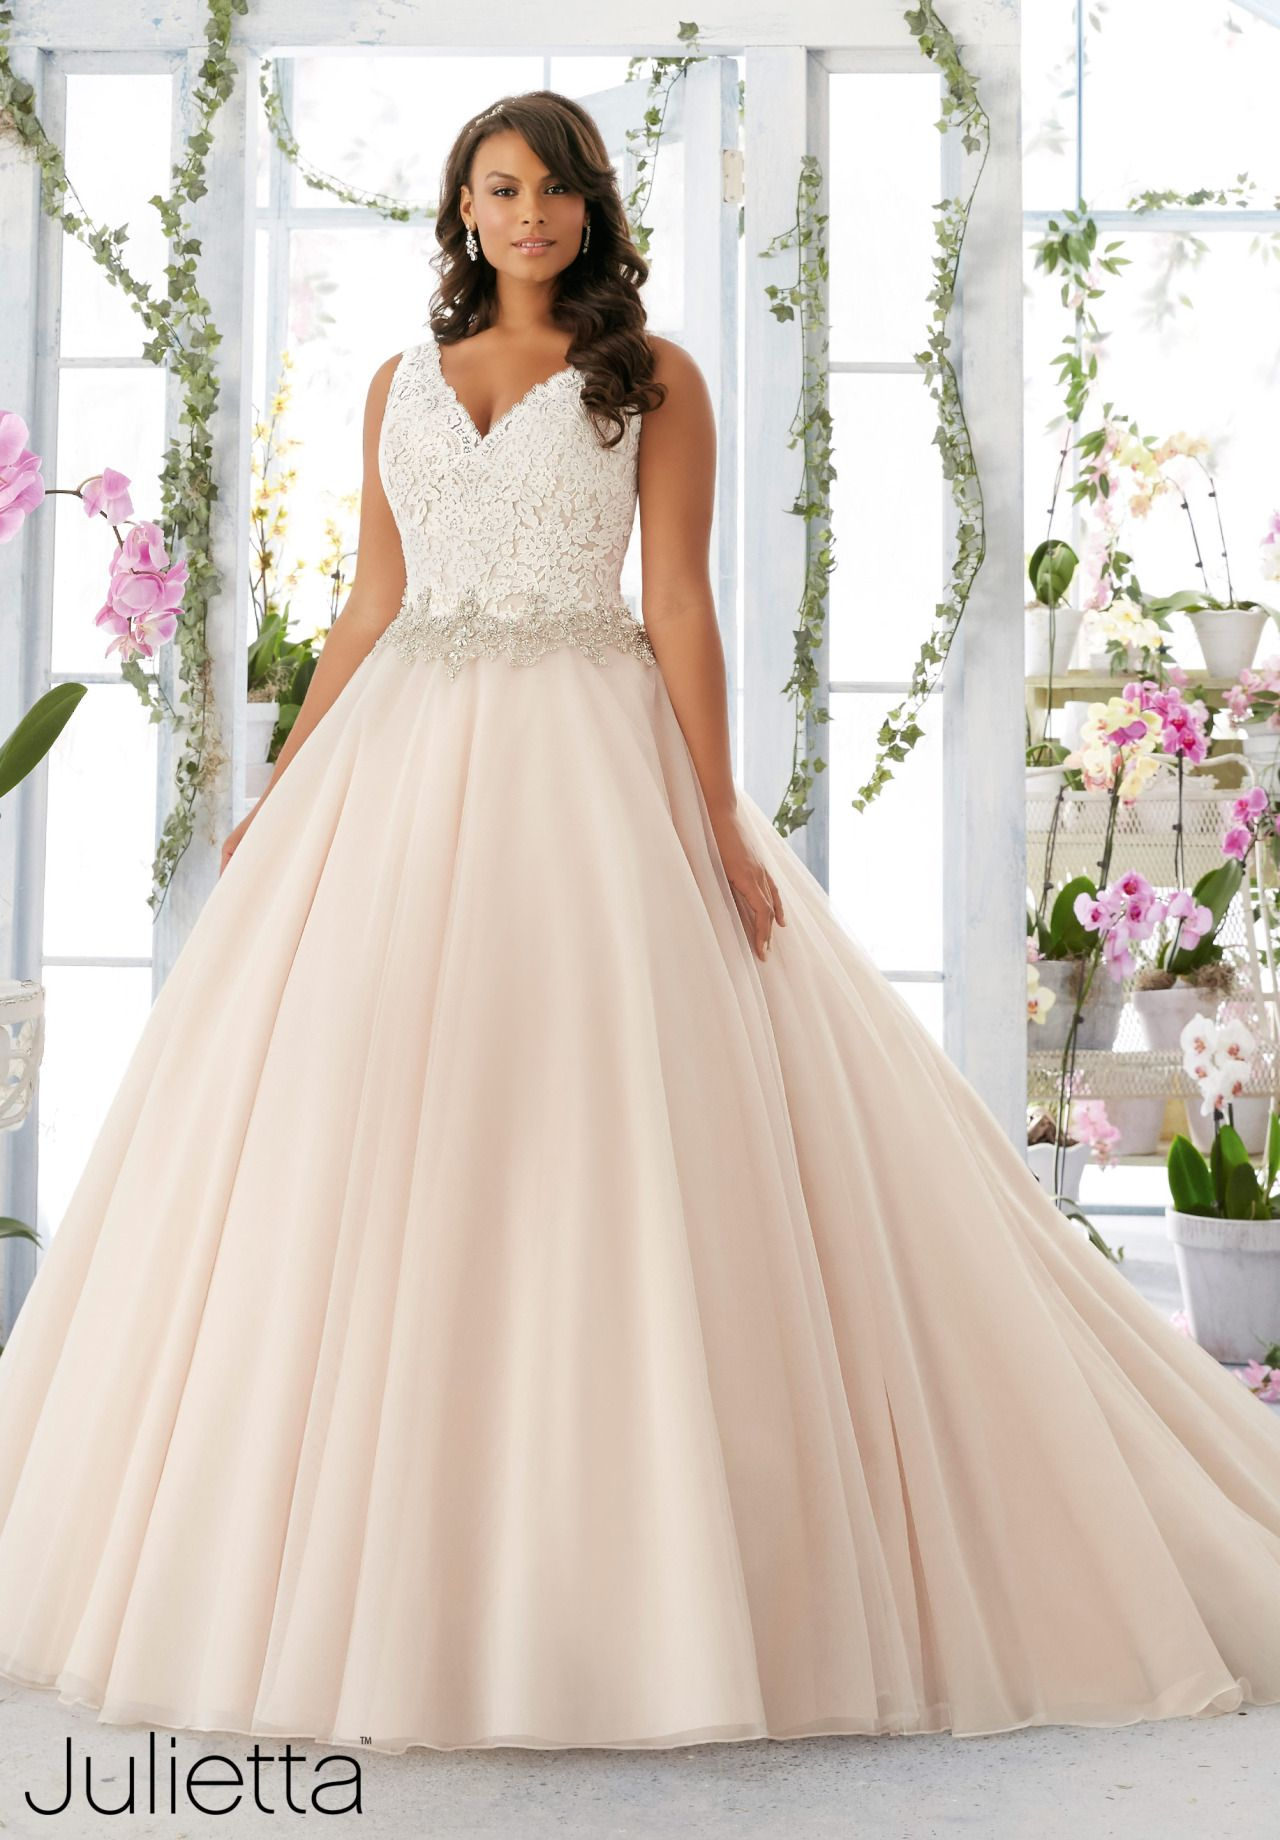 Julietta wedding dresses pinterest wedding dress and weddings